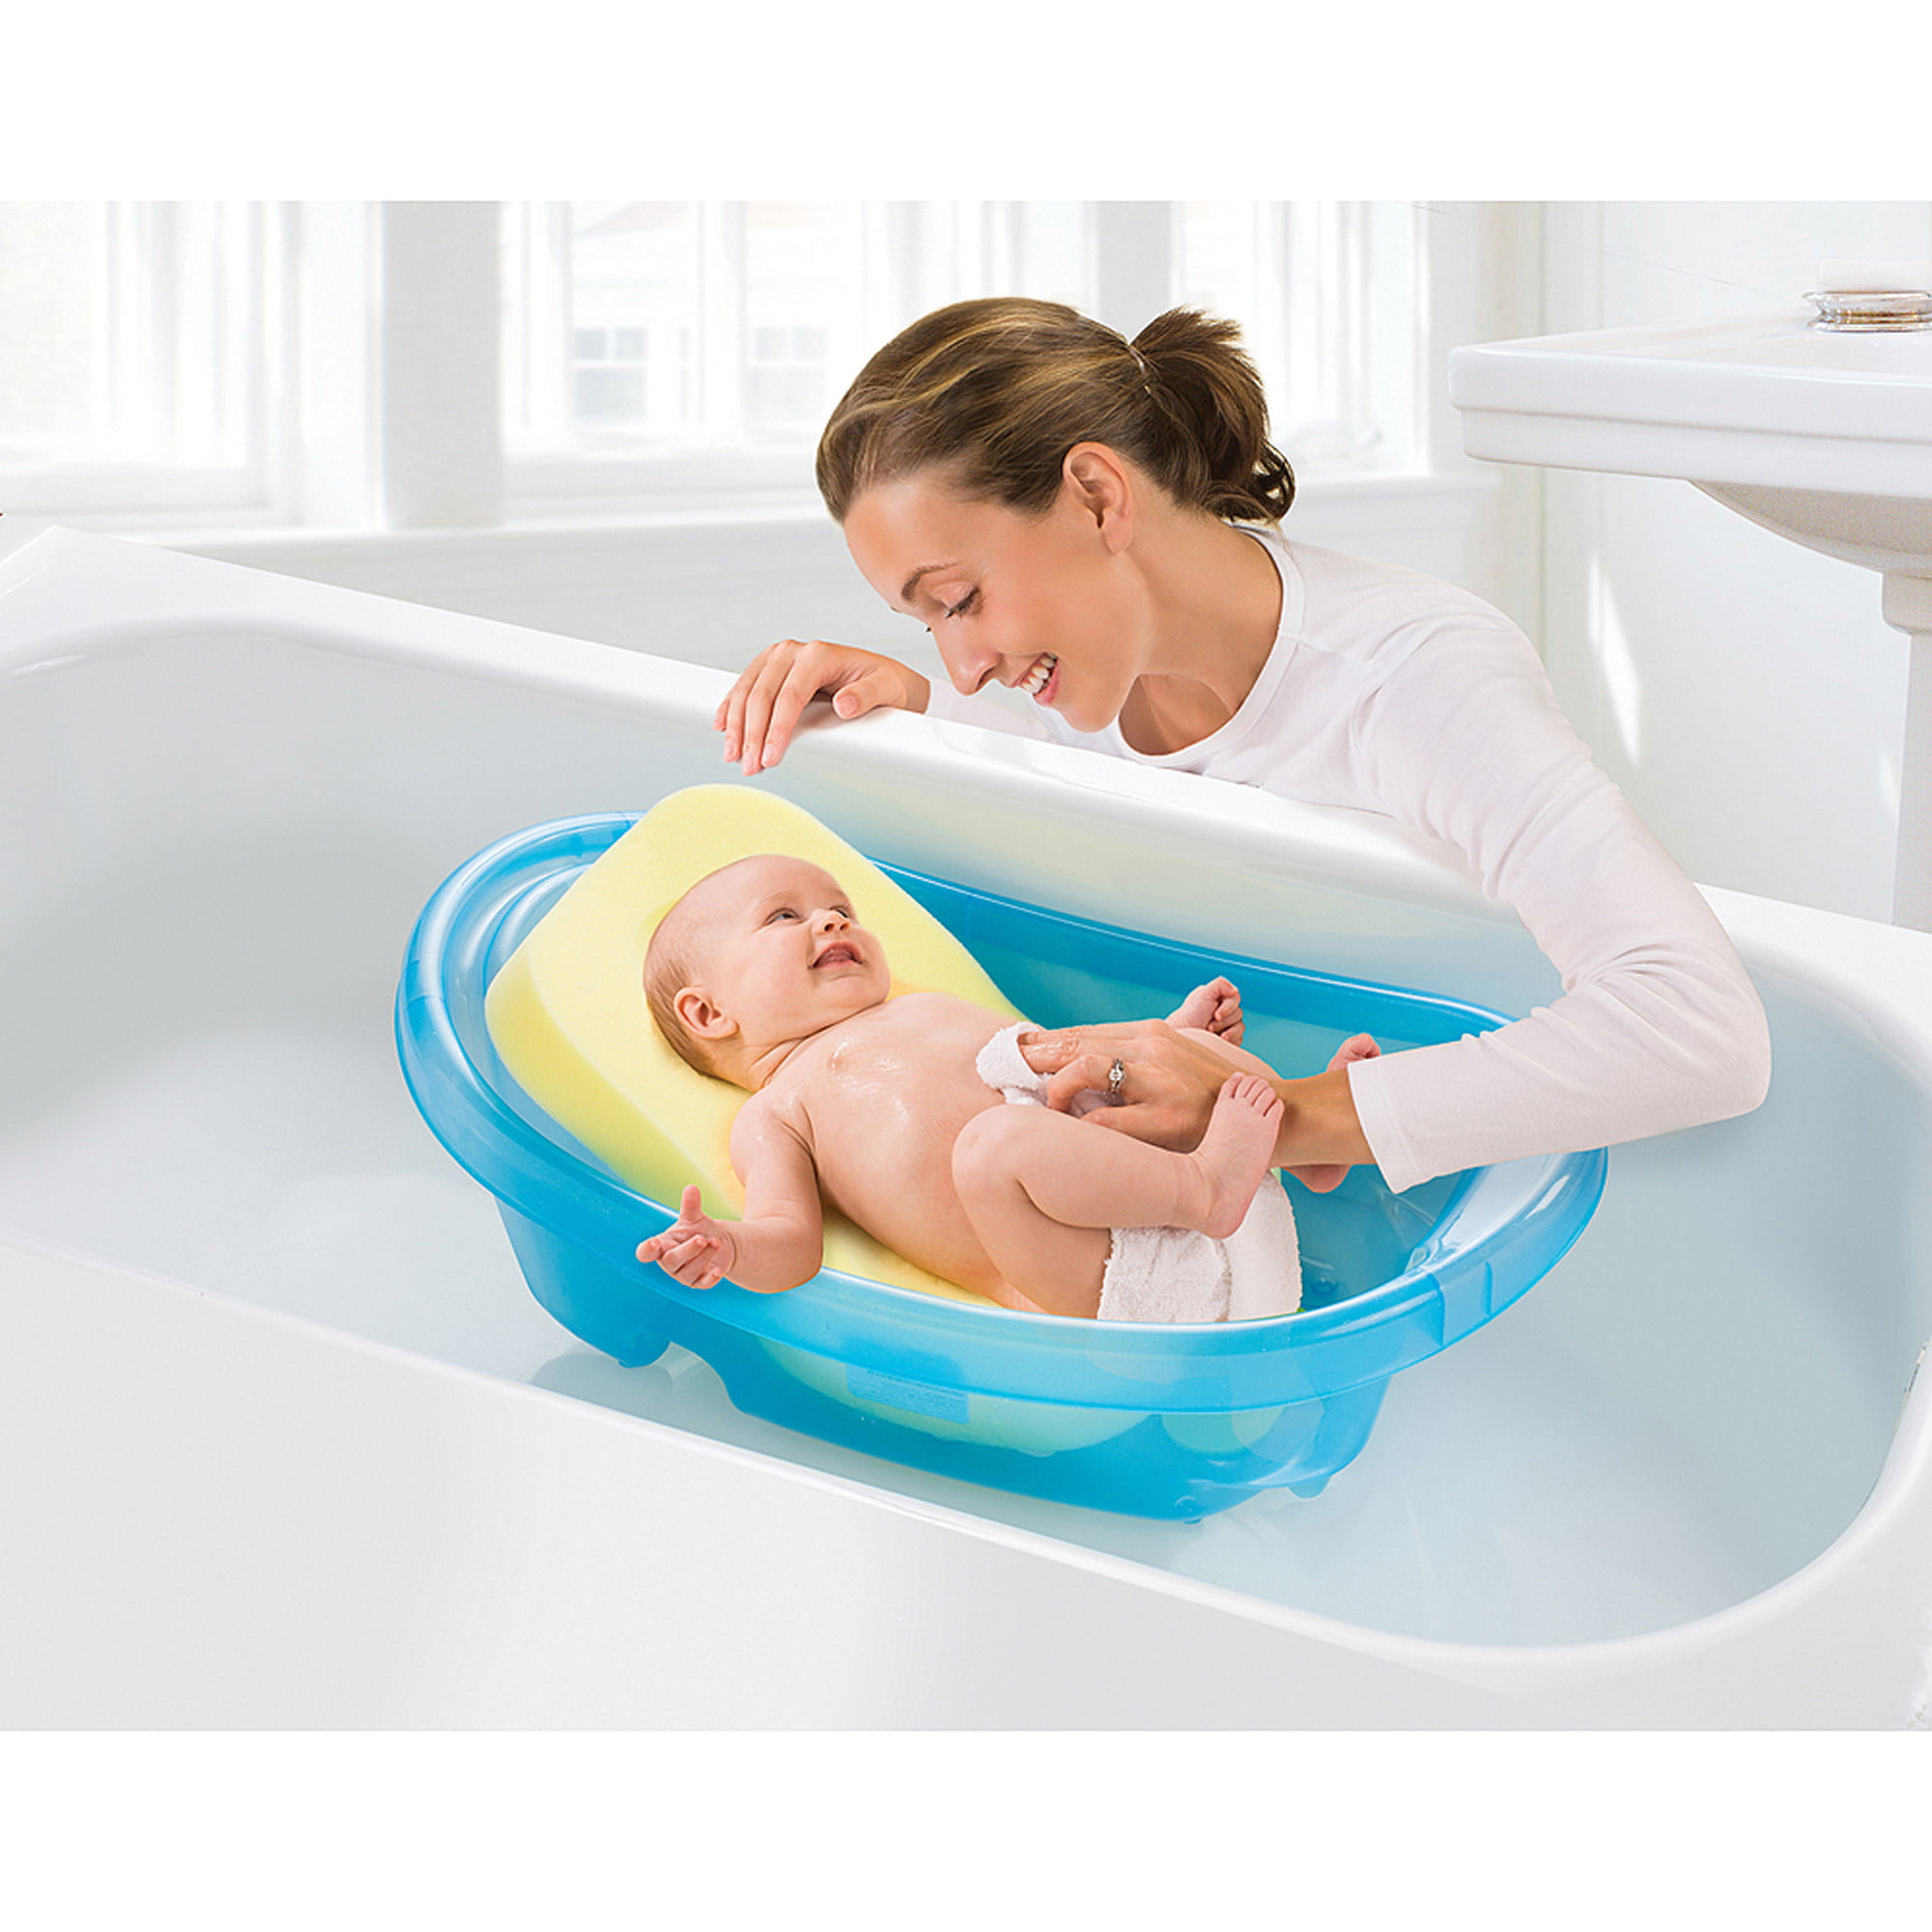 Summer Infant Comfy Bath Sponge - Walmart.com